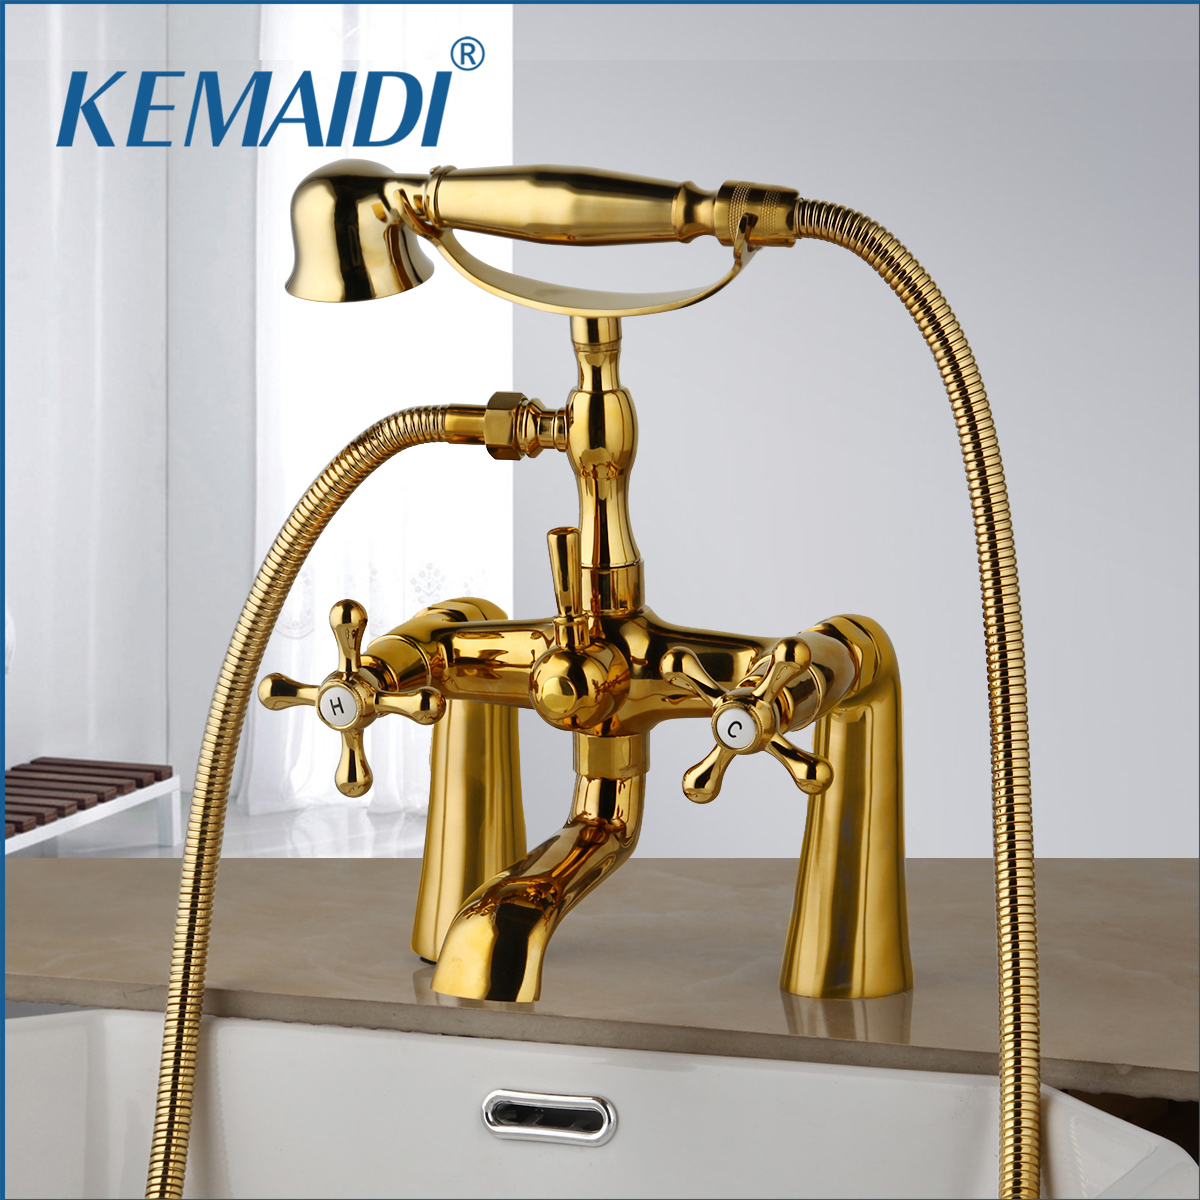 KEMAIDI Antique Brass Golden Bathtub Shower Faucets Set Dual Knobs Mixer Tap Deck Mounted Bath Shower